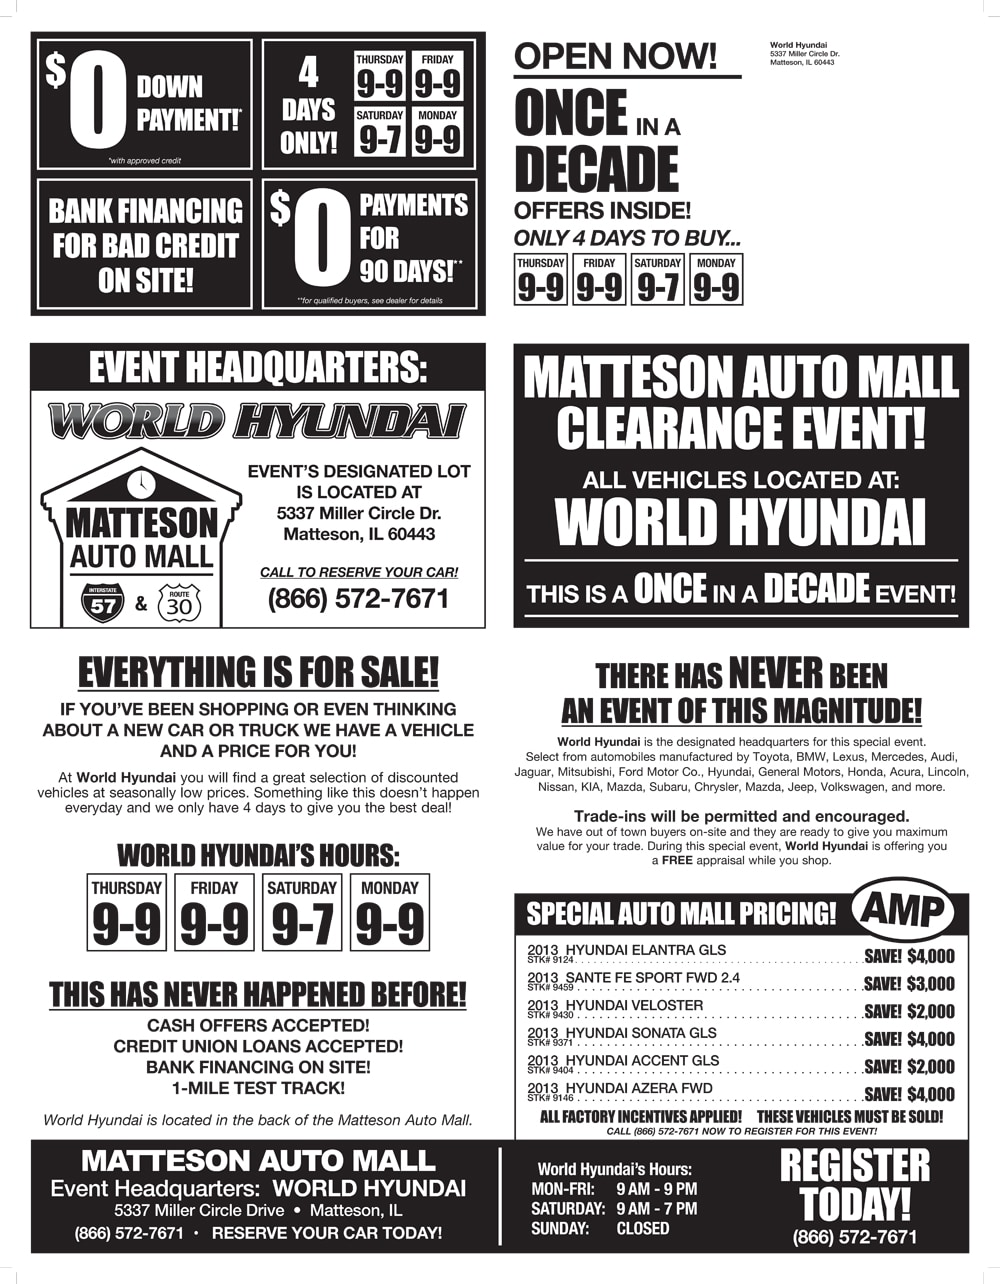 Matteson Auto Mall Clearance Sales Event - Chicago Cheap Cars for Sale